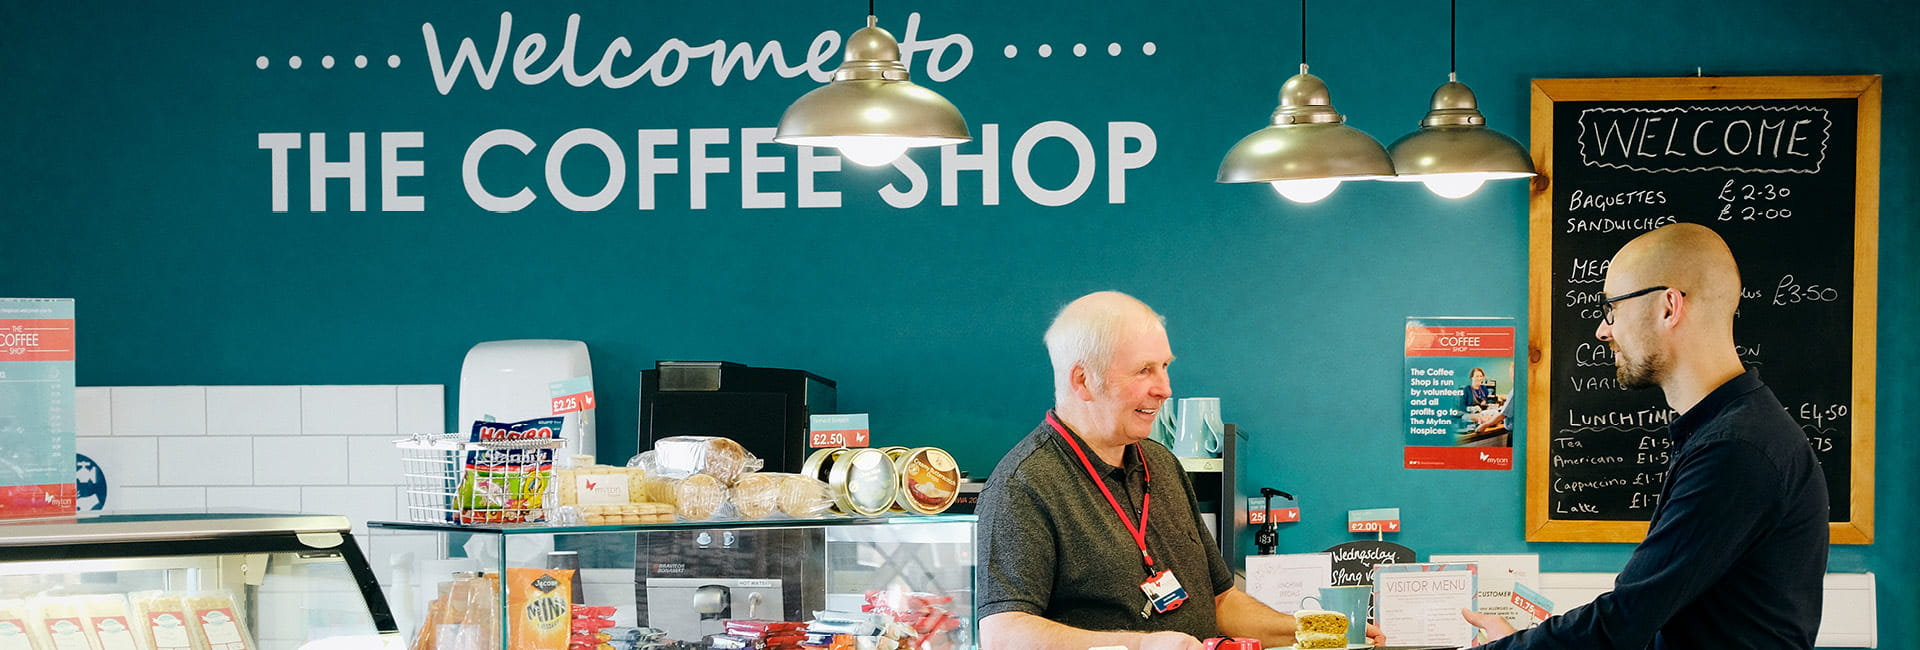 The Myton Hospices - Warwickshire - Coventry - Leamington Spa - Rugby - Volunteering - Volunteer - Coffee Shop